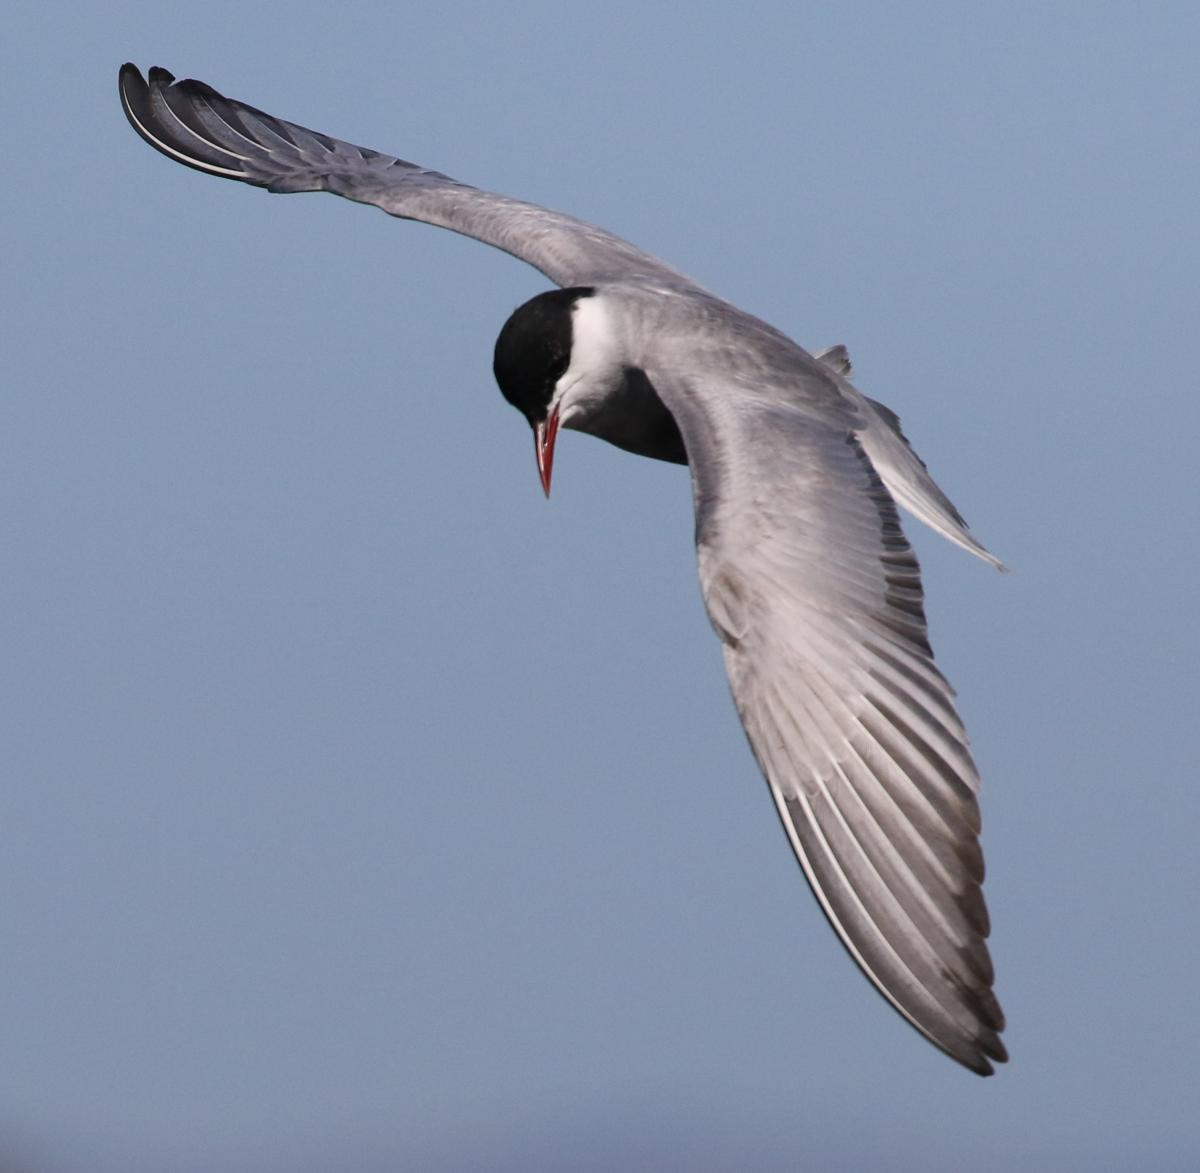 Whiskered tern new zealand birds online images sciox Choice Image